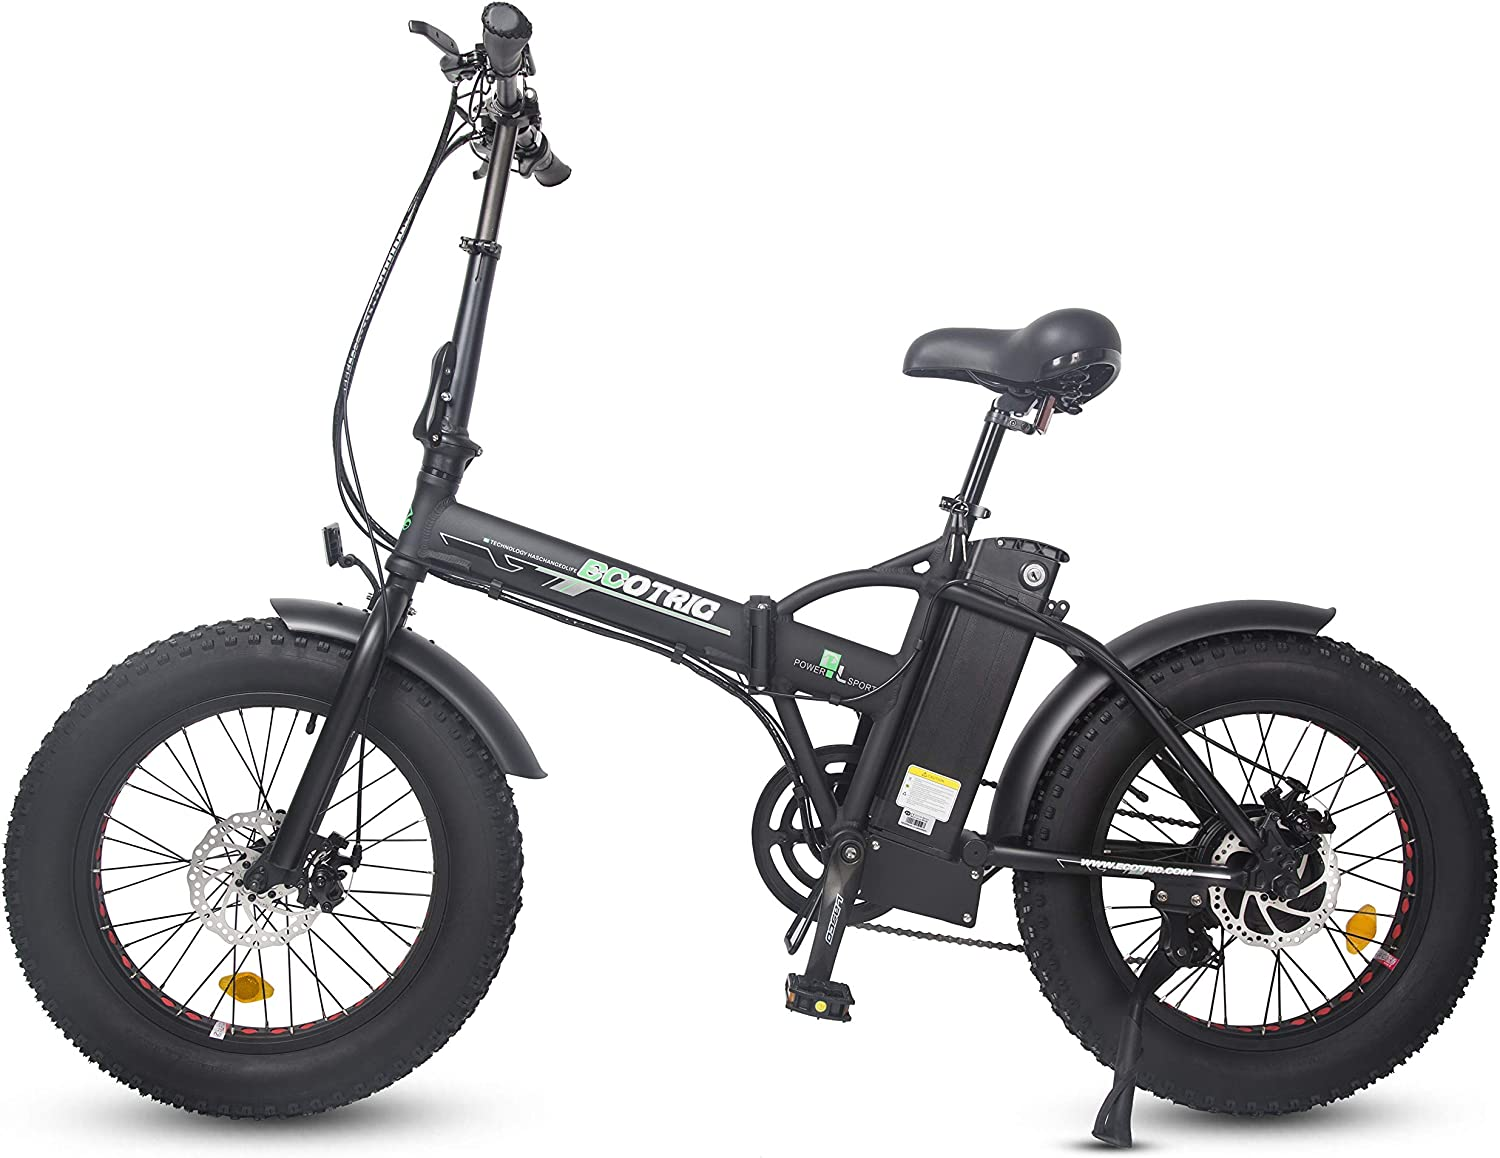 ECOTRIC Electric Foldable Bike Black Beach Snow Bicycle 20 4.0 inch Fat Tire Aluminum Frame Ebike 500W 48V 13AH Electric Mountain Bicycle